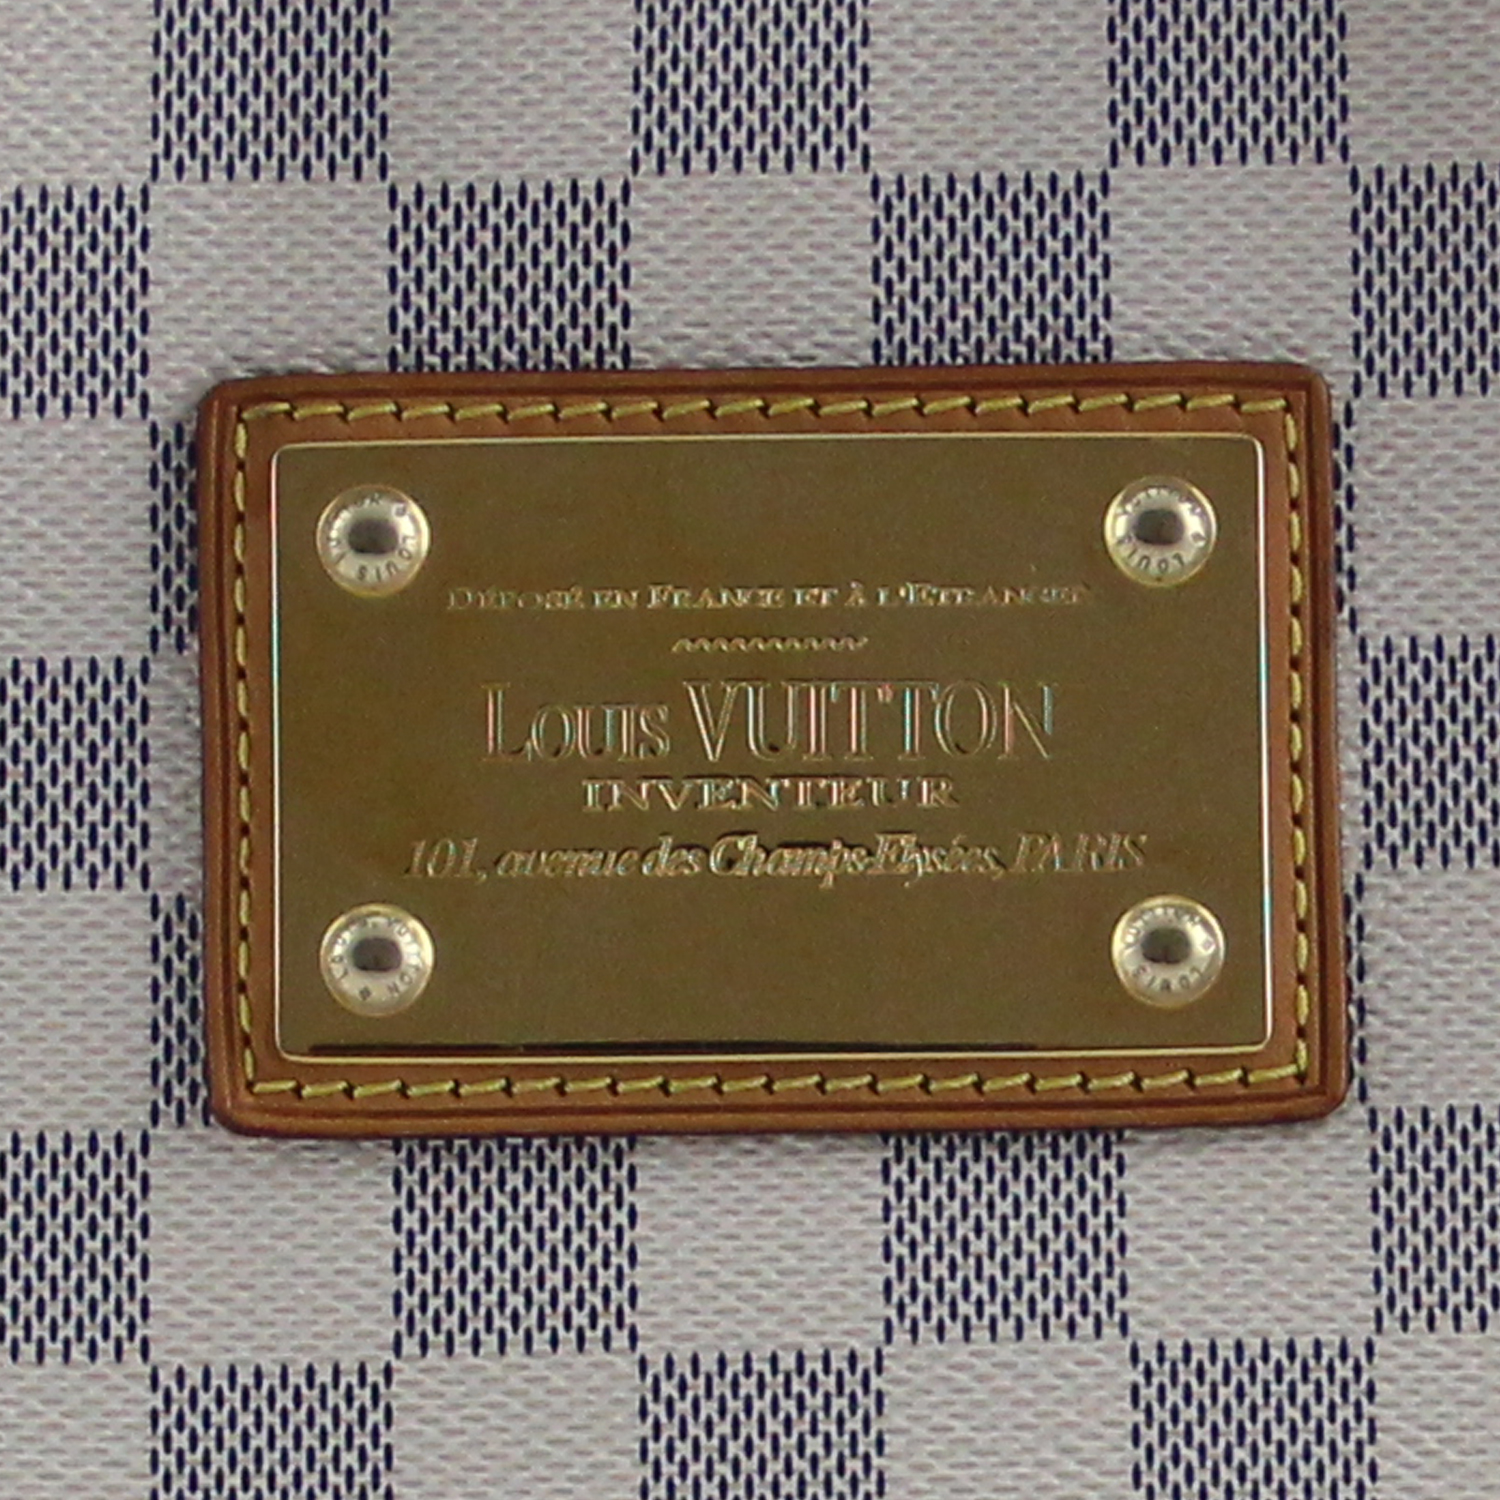 used louis vuitton handbags